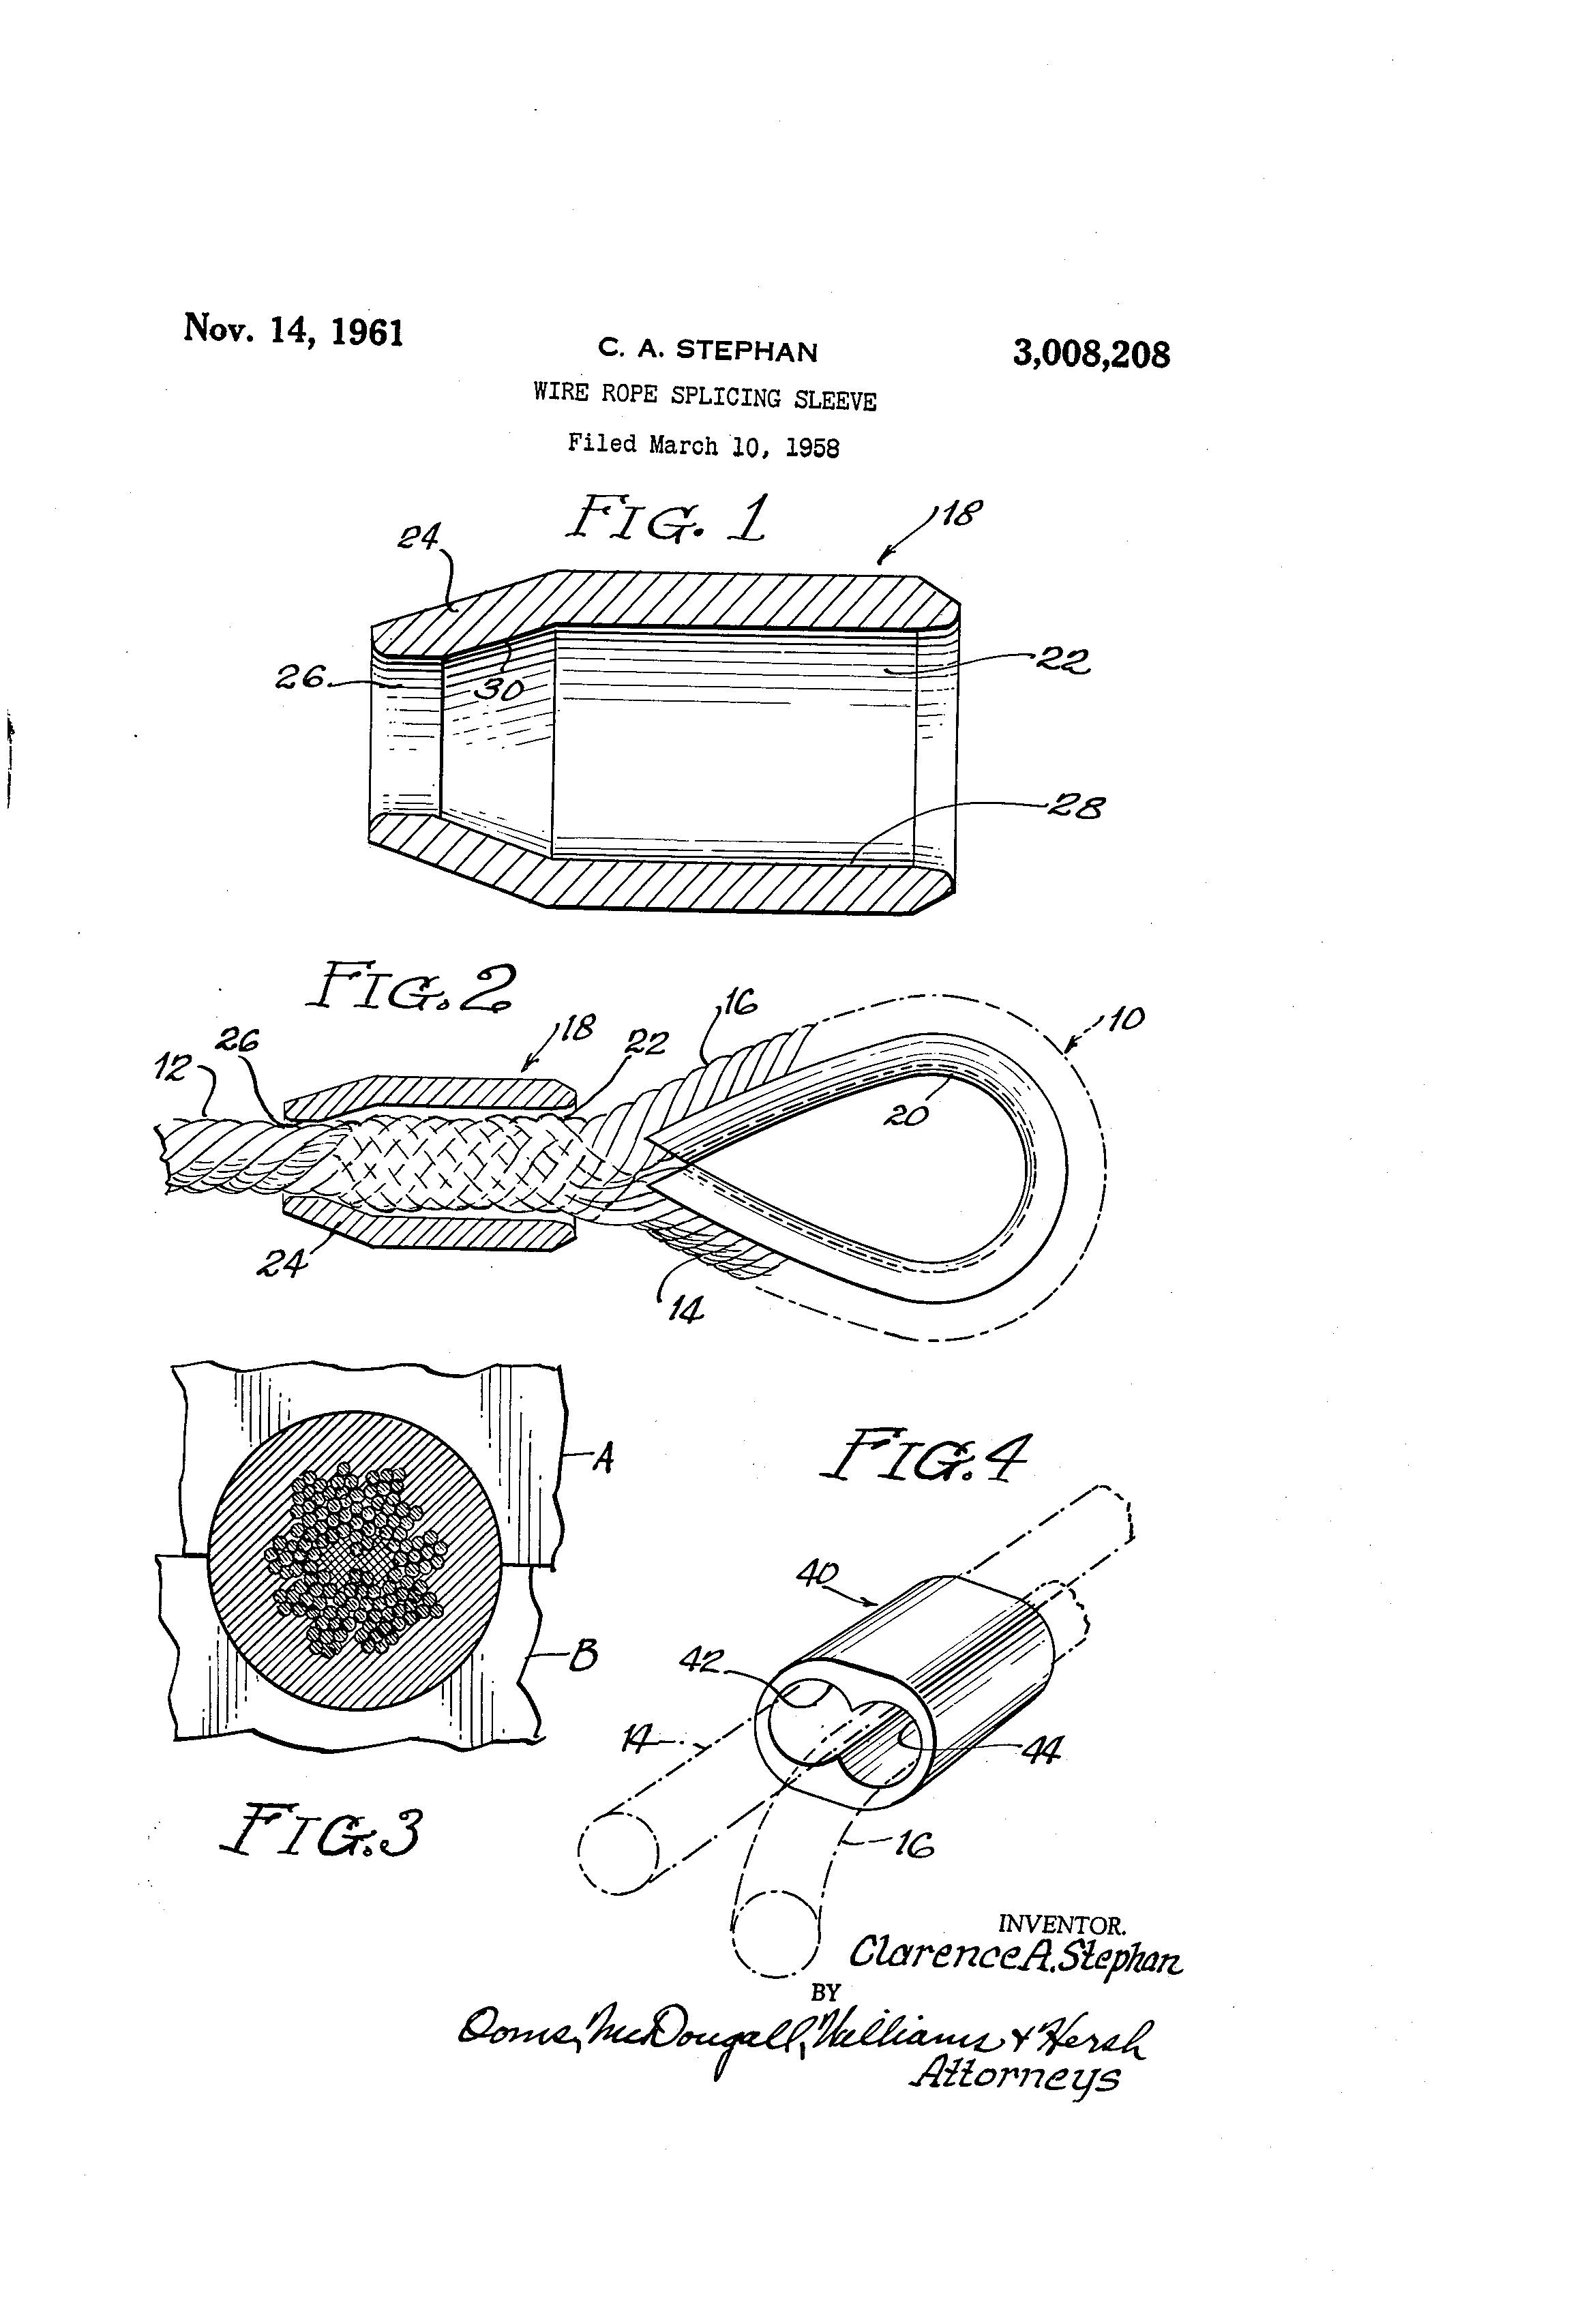 patent us3008208 - wire rope splicing sleeve